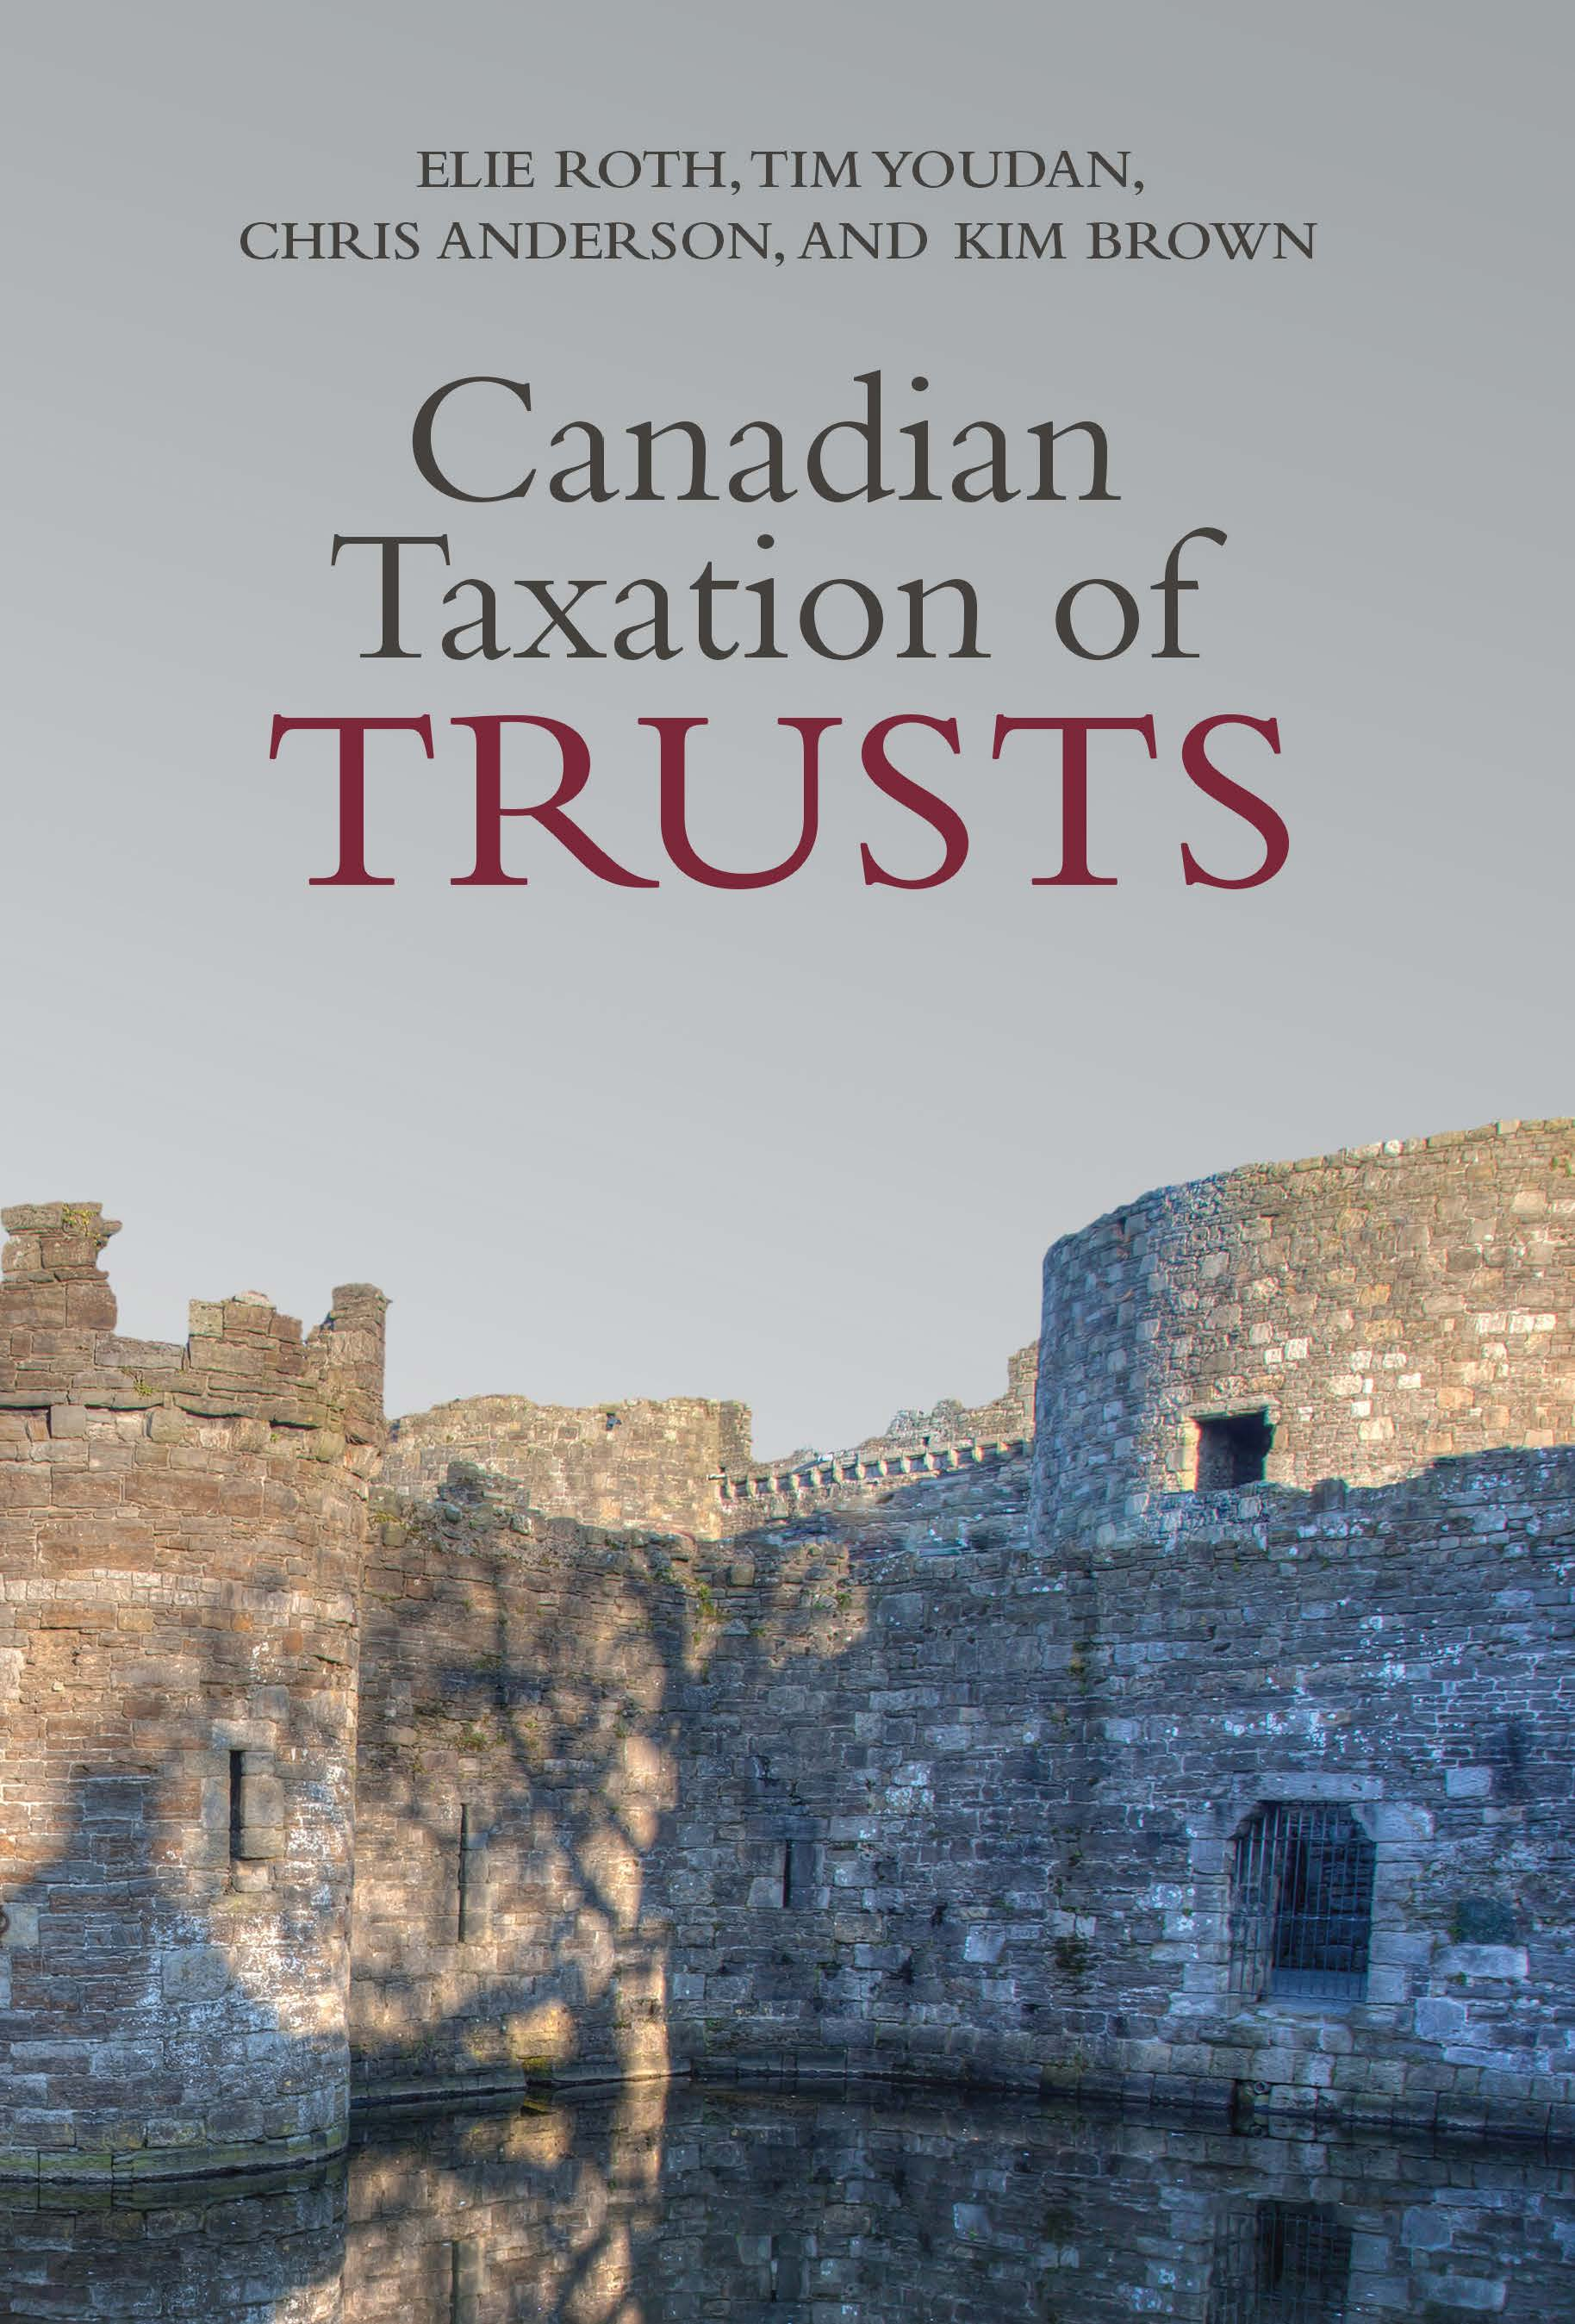 Trusts_front cover